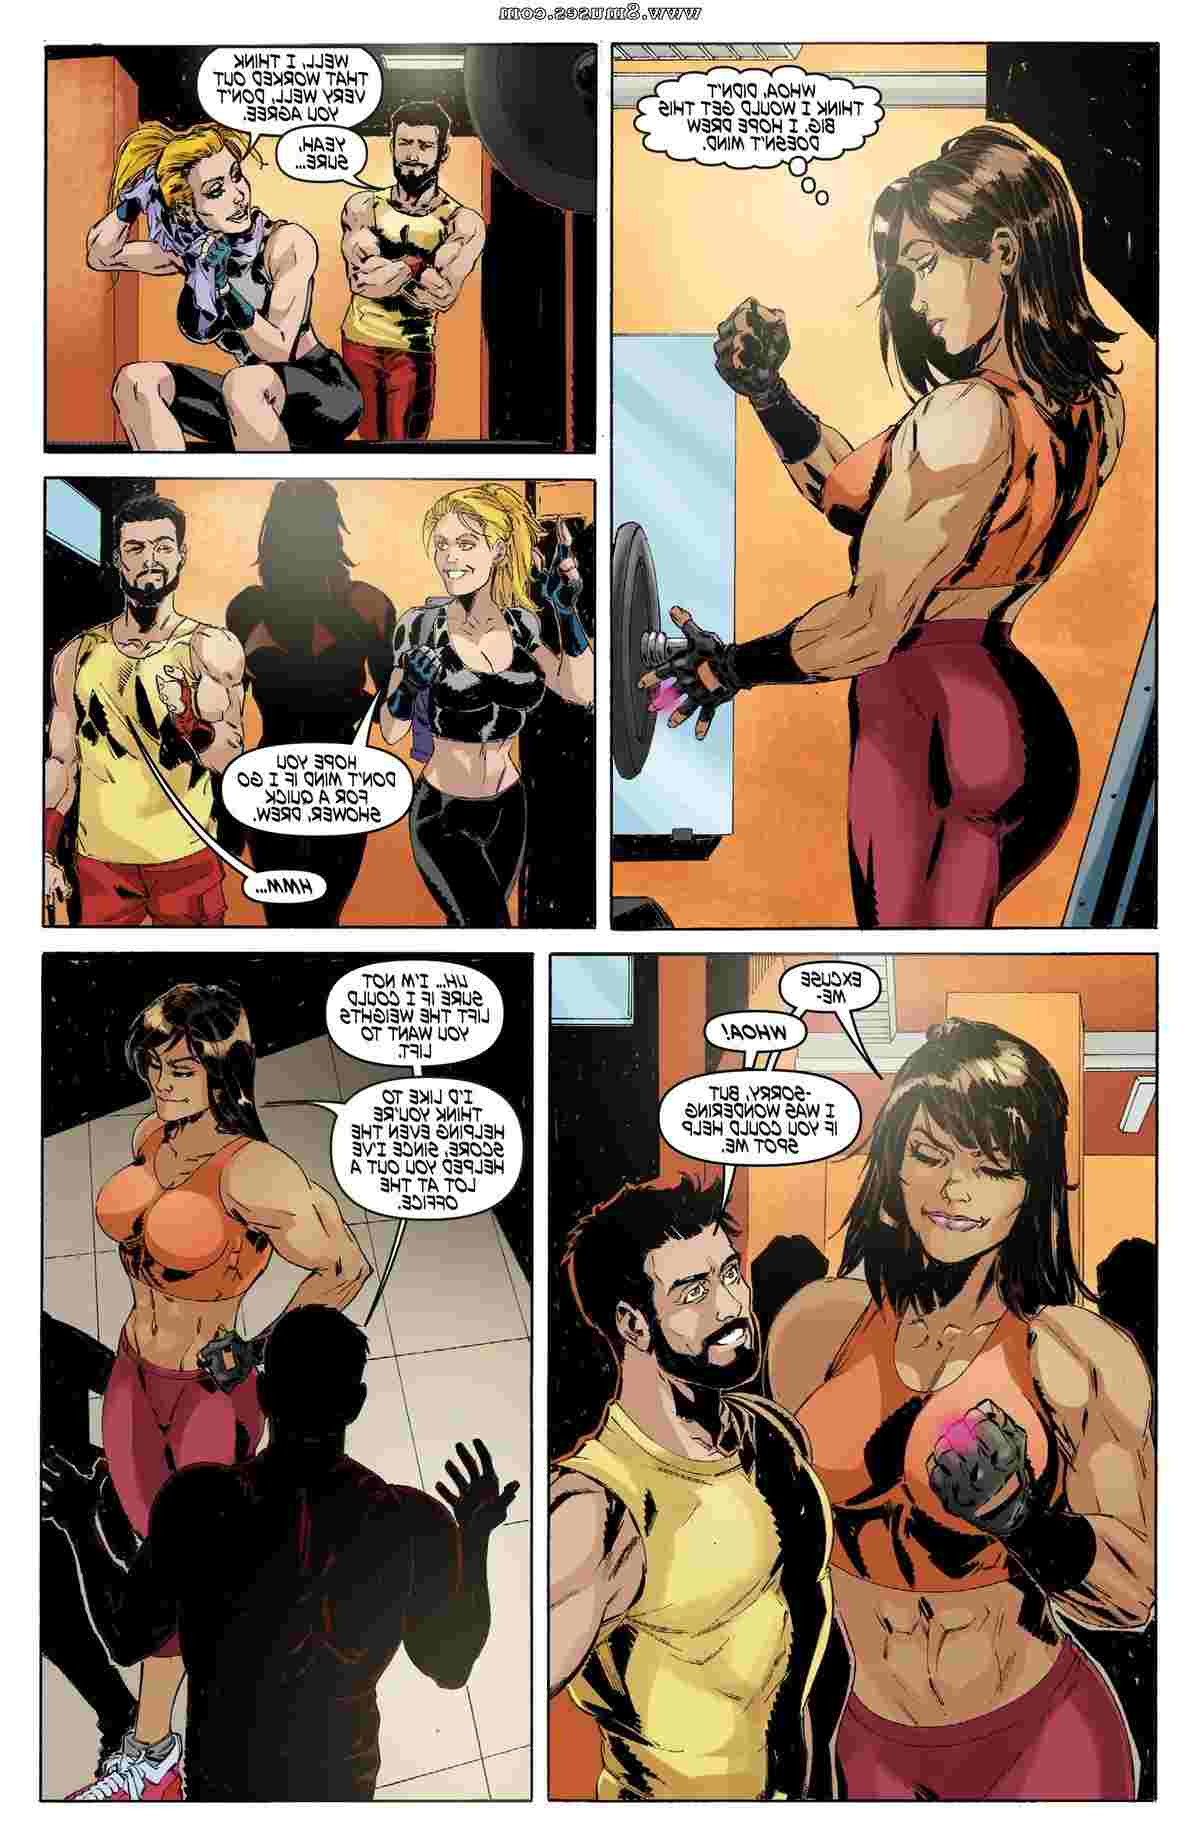 MuscleFan-Comics/Leveling-The-Field Leveling_The_Field__8muses_-_Sex_and_Porn_Comics_15.jpg